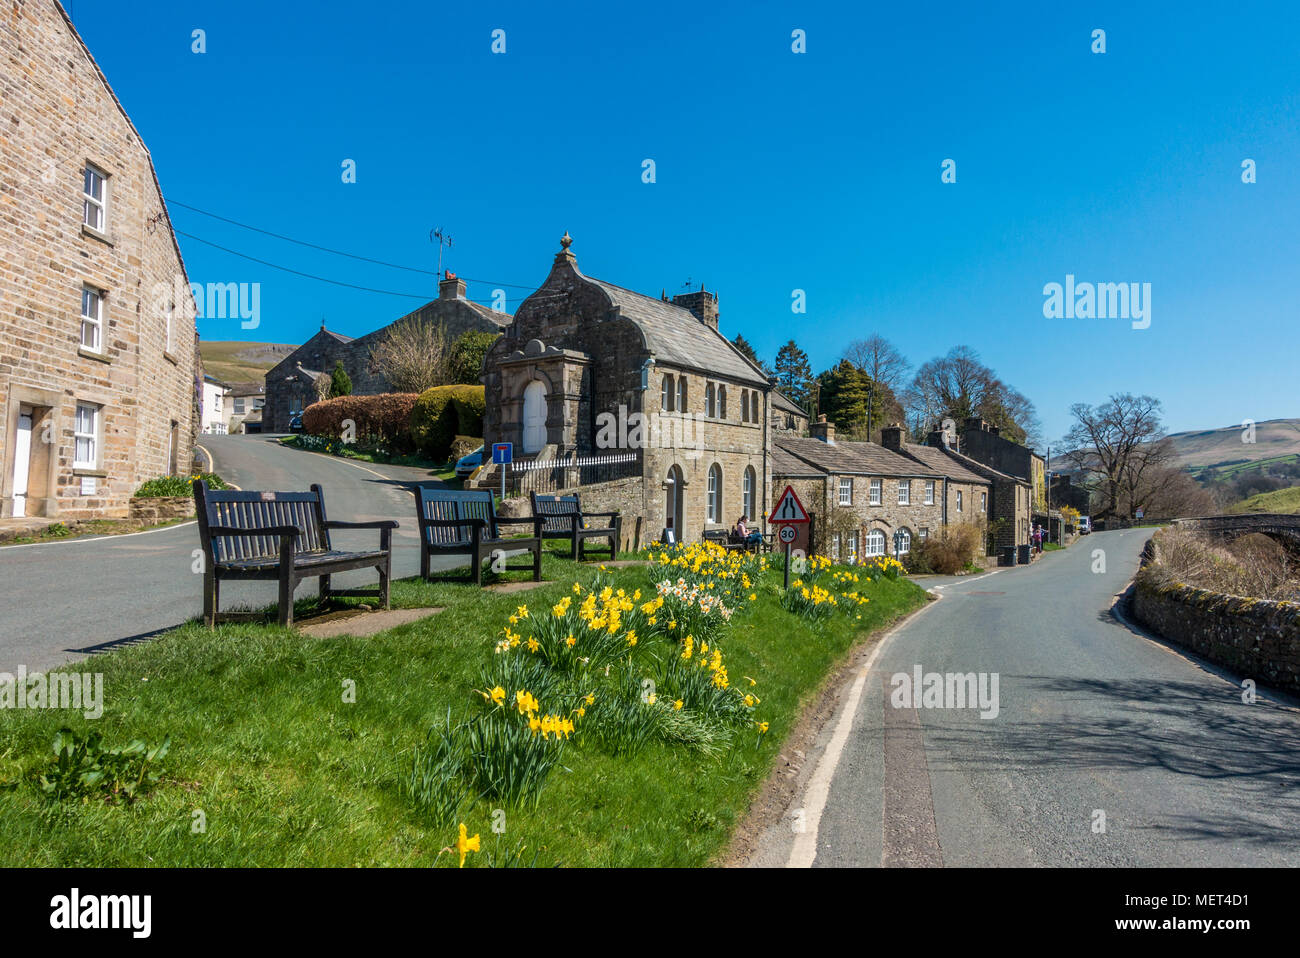 The beautiful stone houses of the village of Muker in Swaledale, Yorkshire Dales, UK - Stock Image